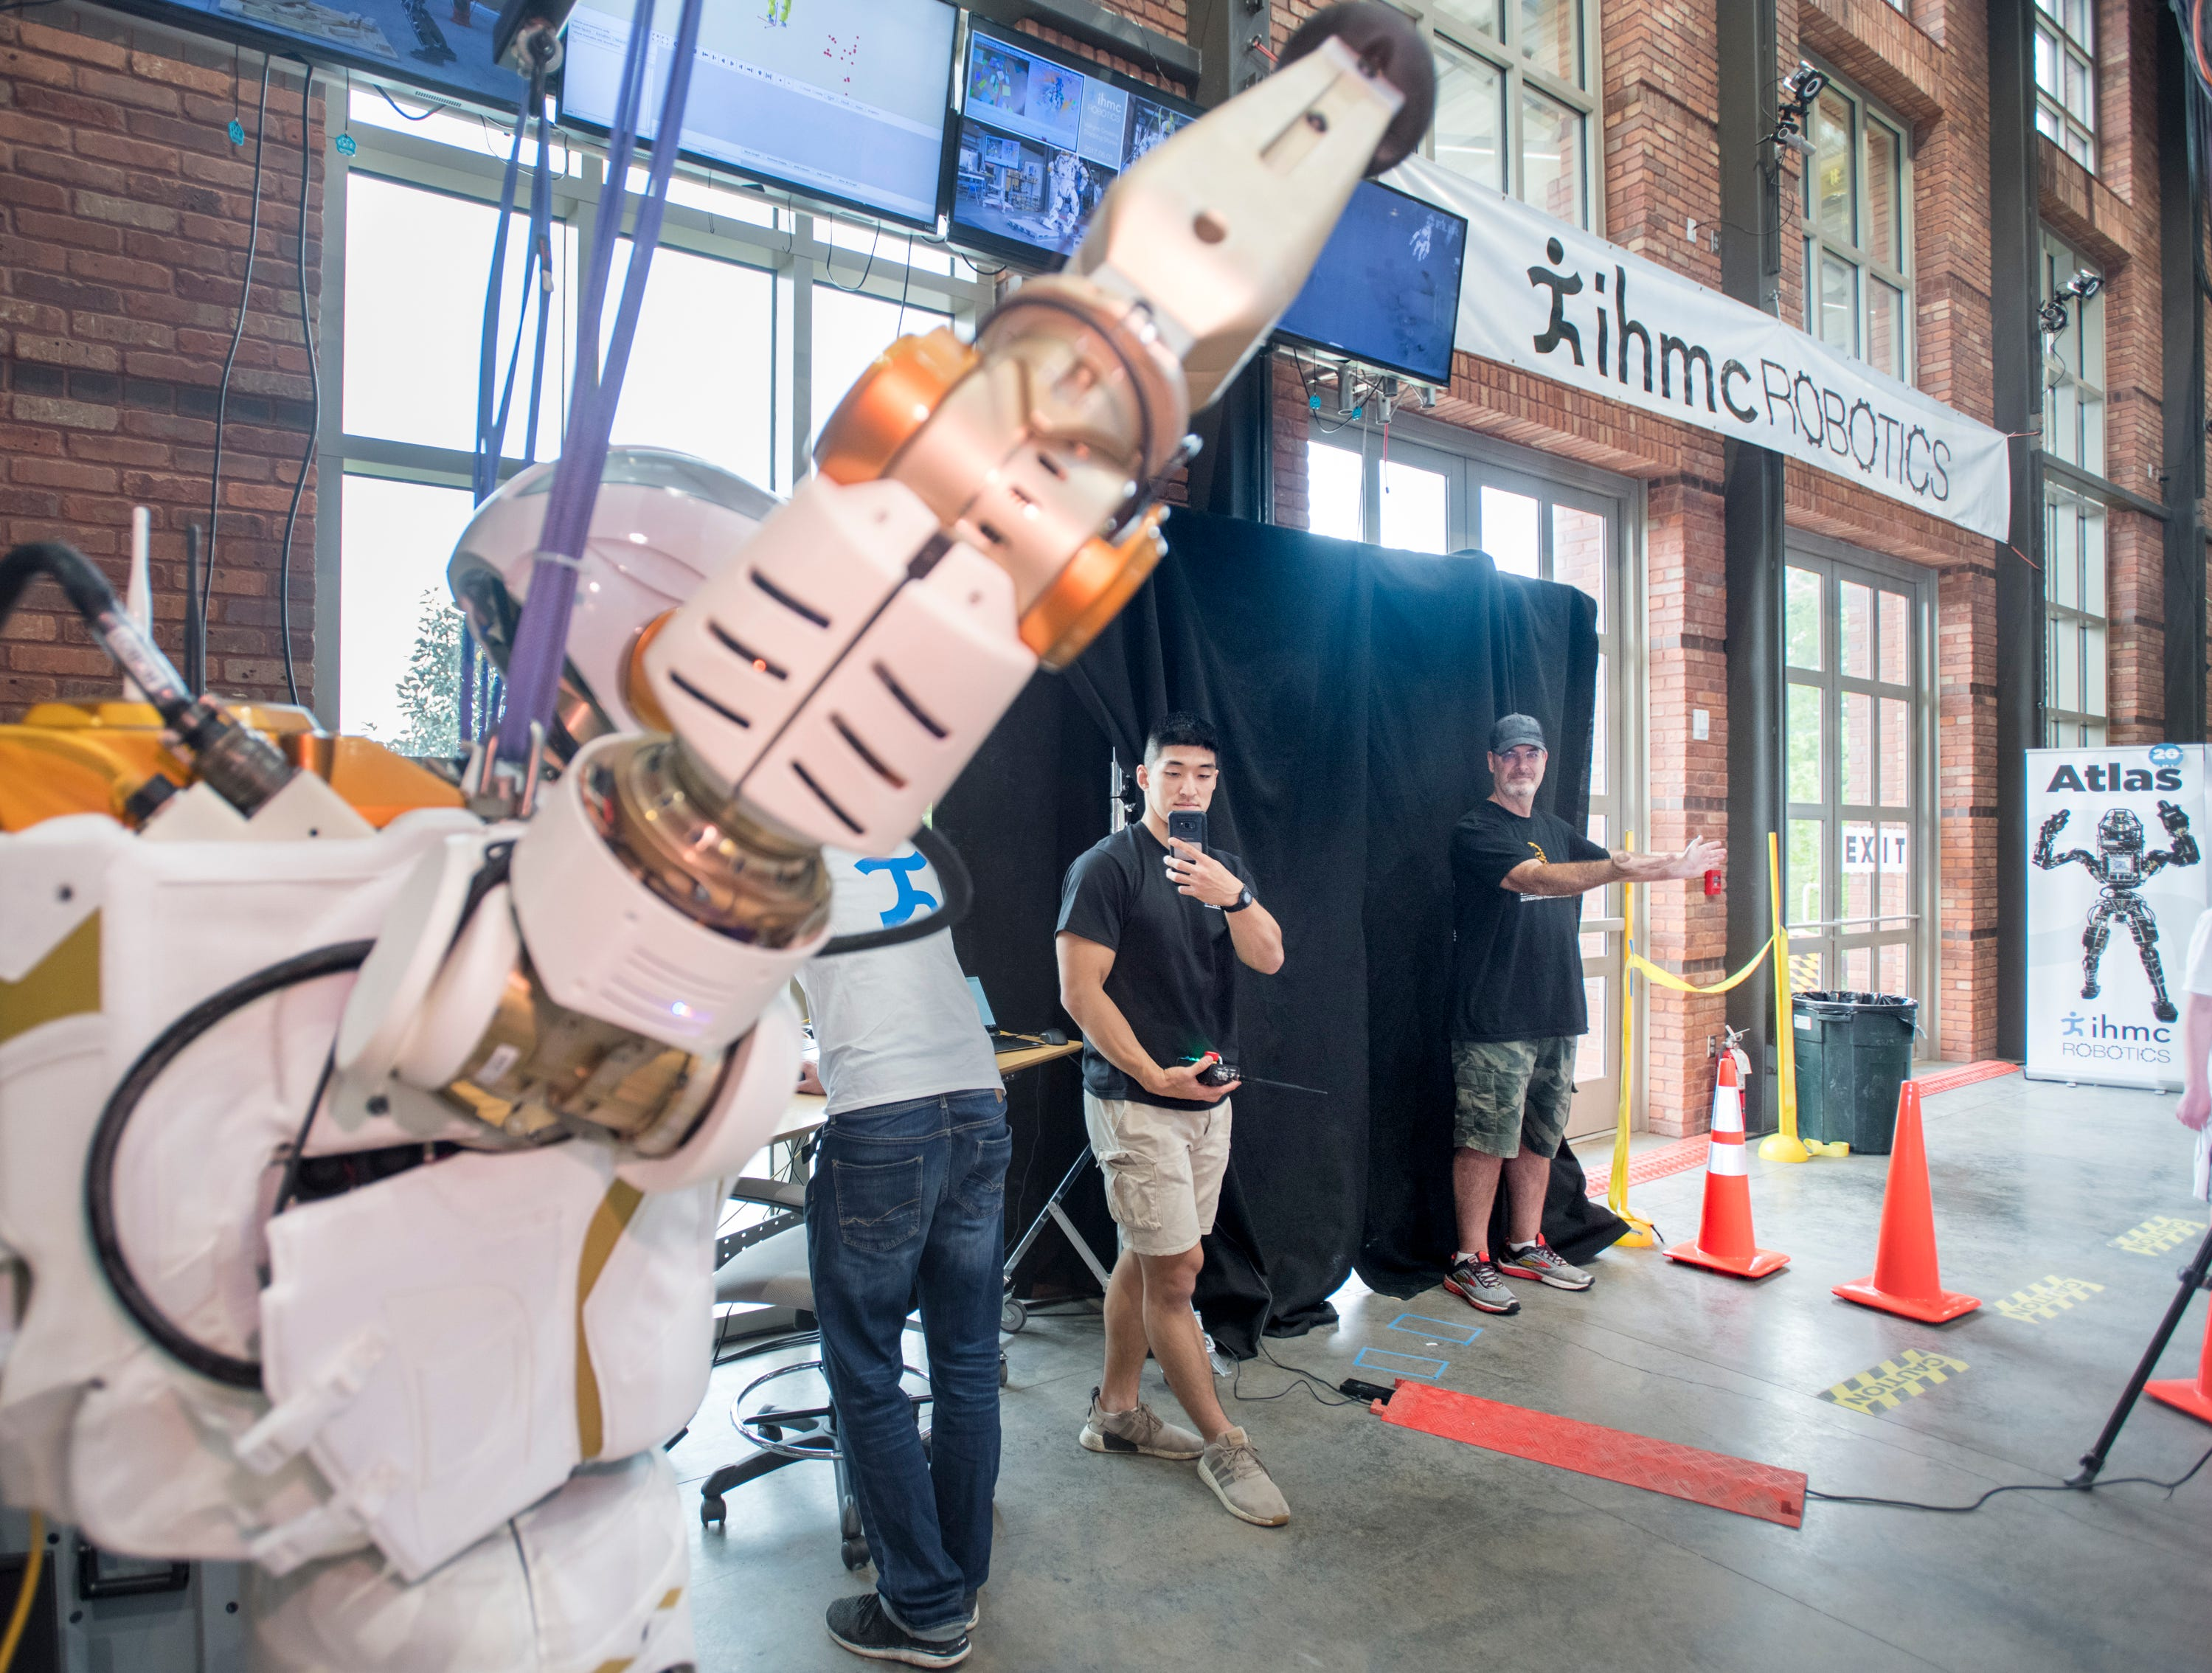 Derry Bullock, right, watches as the Valkyrie robot mimics his arm gestures during the IHMC Open House in downtown Pensacola on Friday, April 12, 2019.